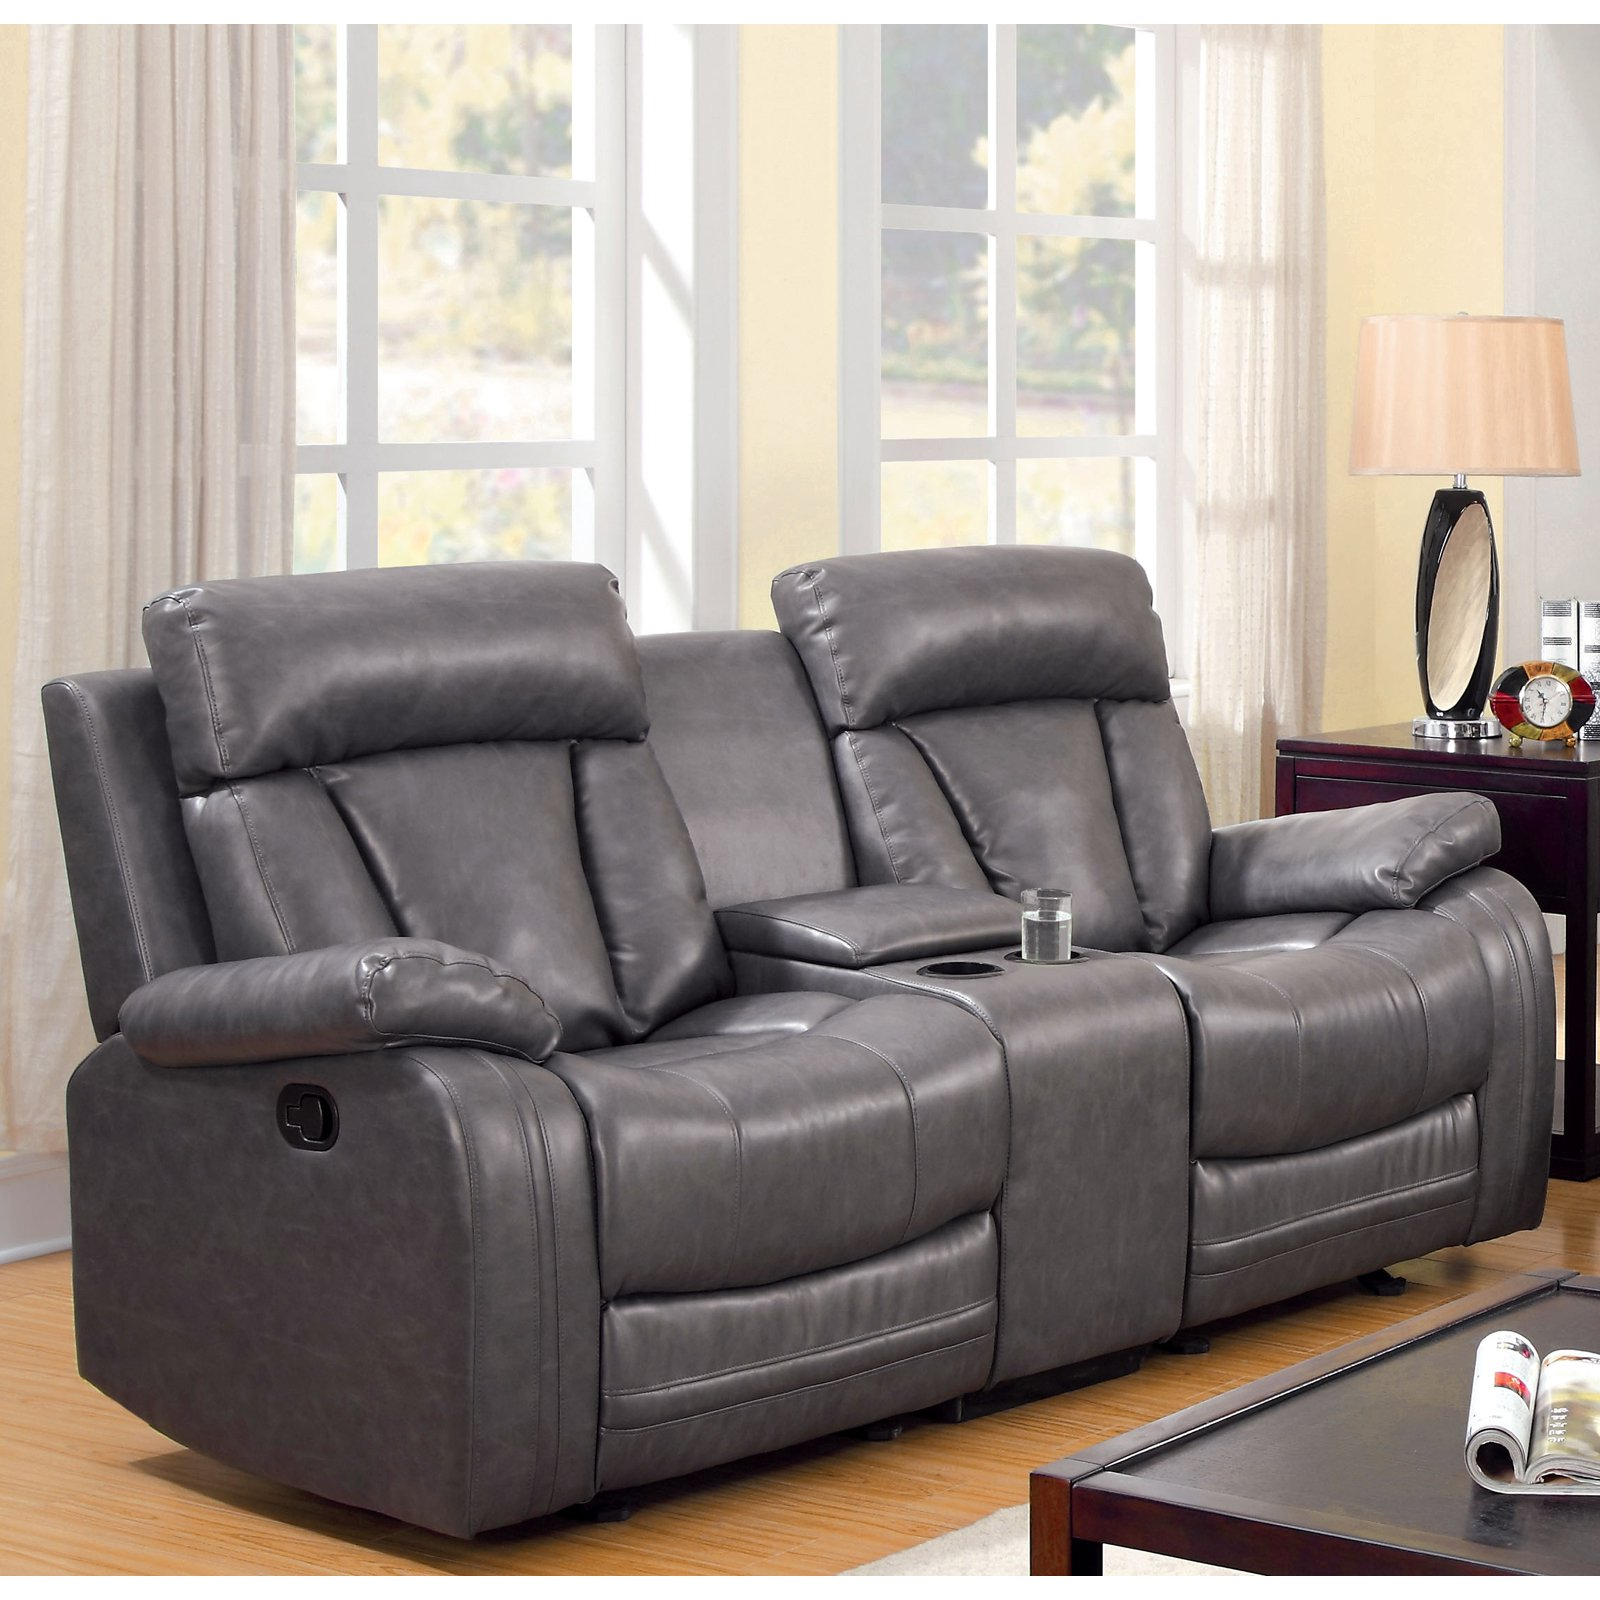 furniture love products loveseat seat wide and console with reclining holders cup power extra storage